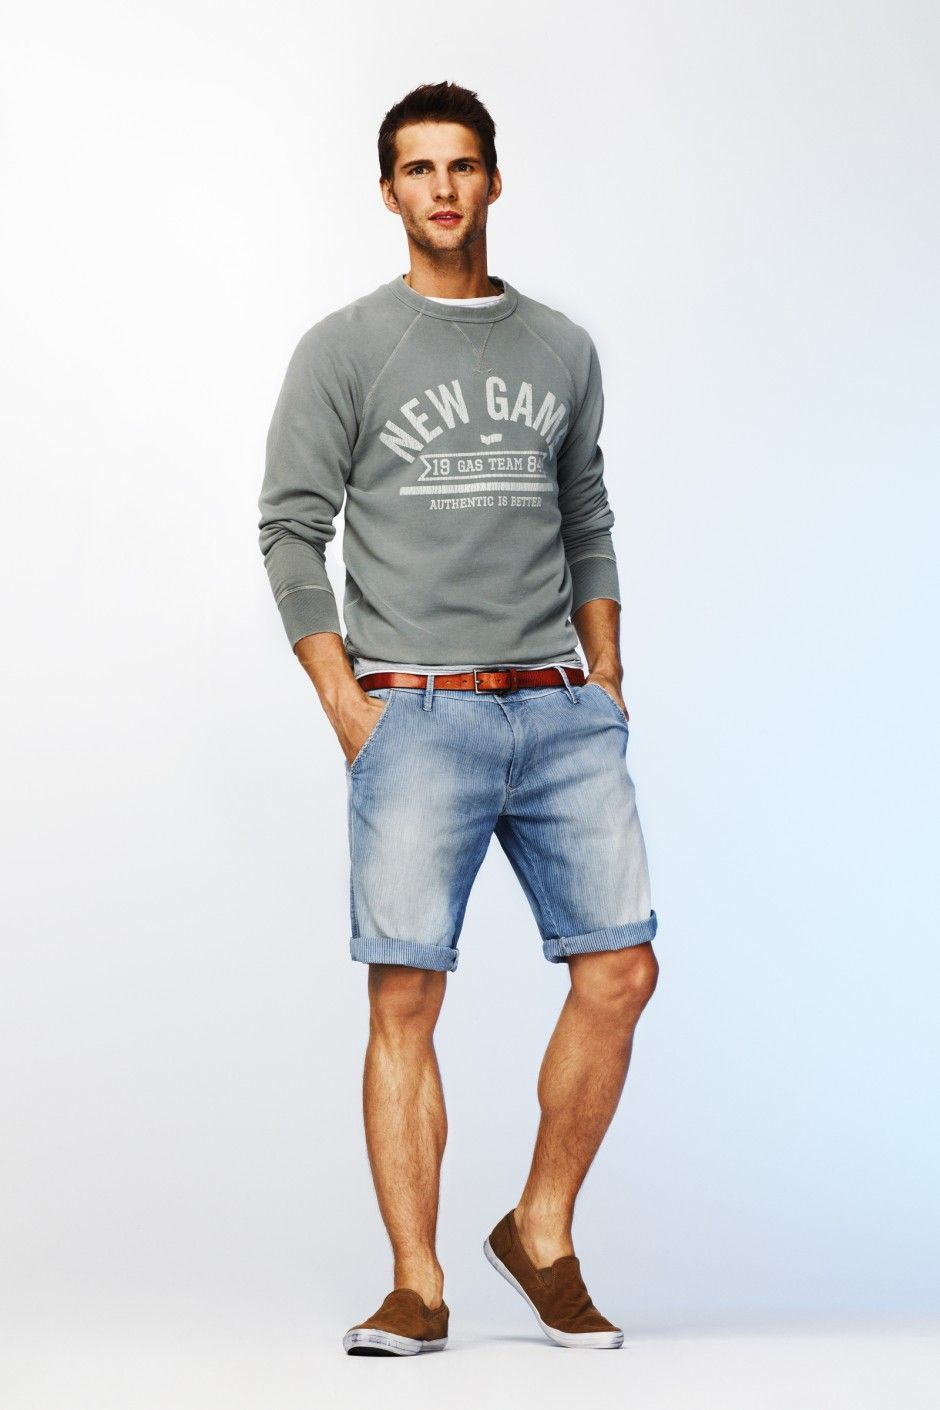 4807004cc2 look: grey sweater + denim shorts + brown slip-on shoes | Great look for  summer breeze.